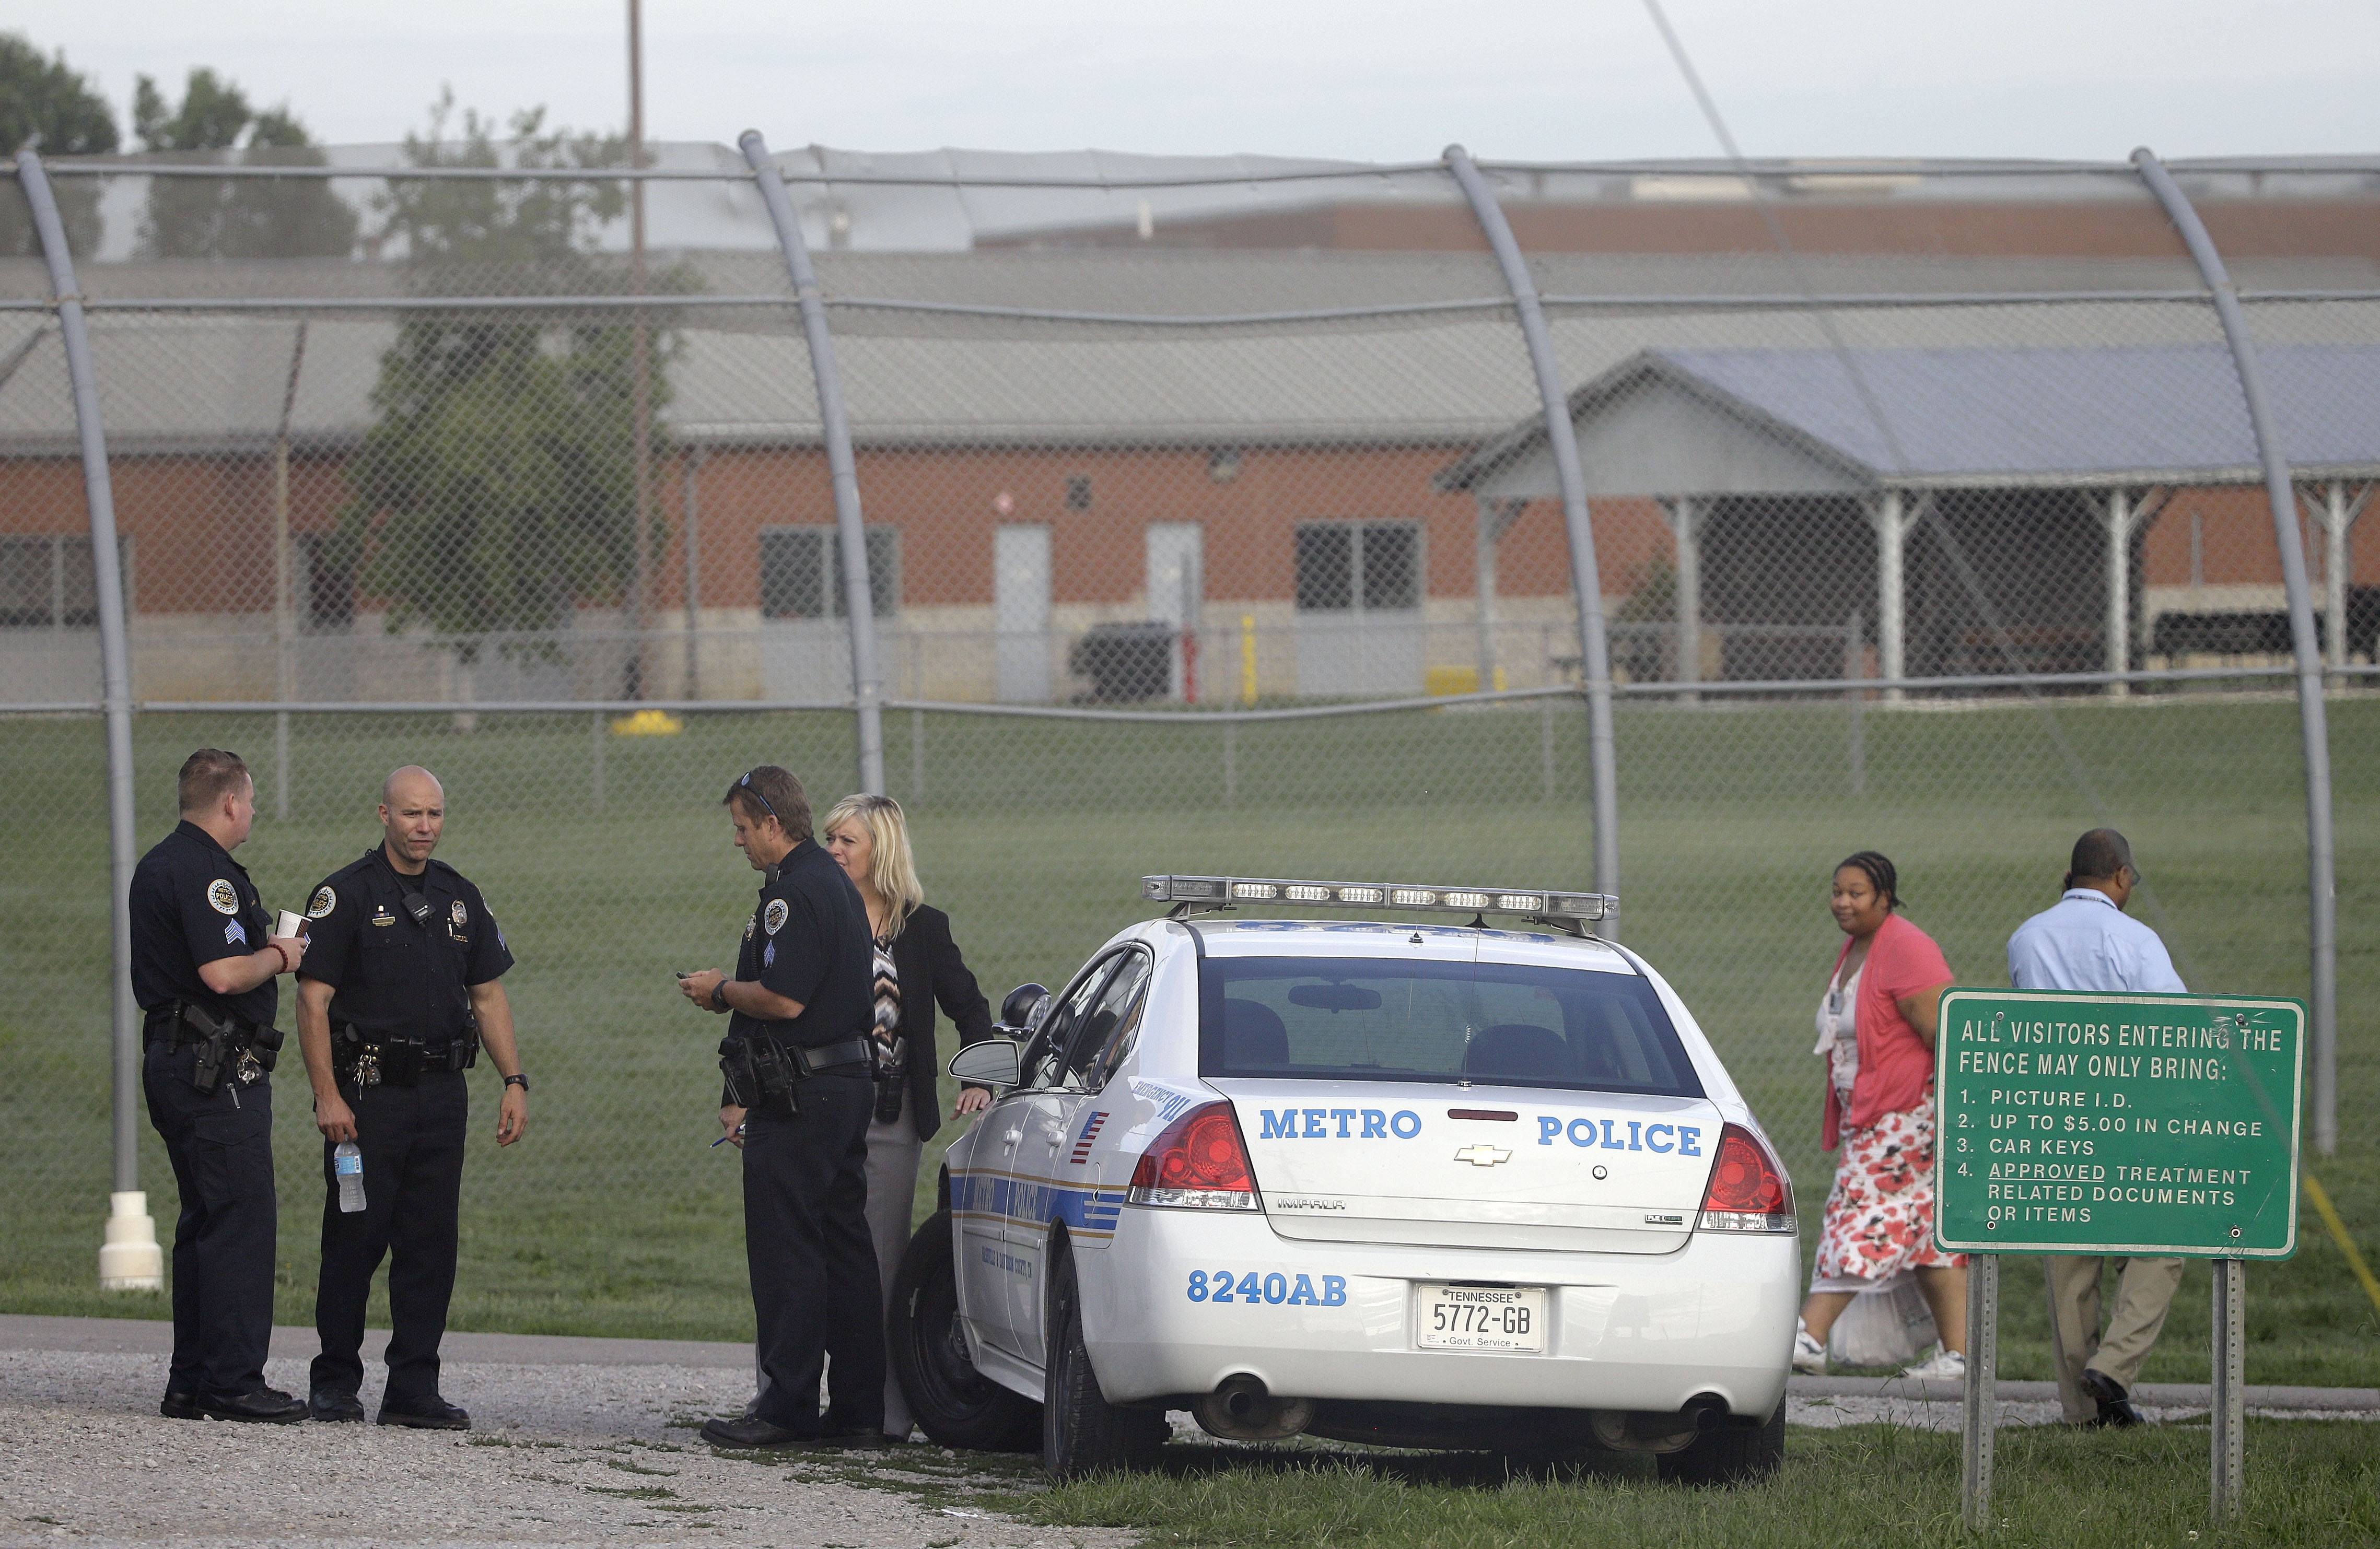 Thirty-two teens escaped from a Nashville youth detention center by crawling through a weak spot in a fence late Monday, and more than half of them were still on the run Tuesday, a spokesman said.